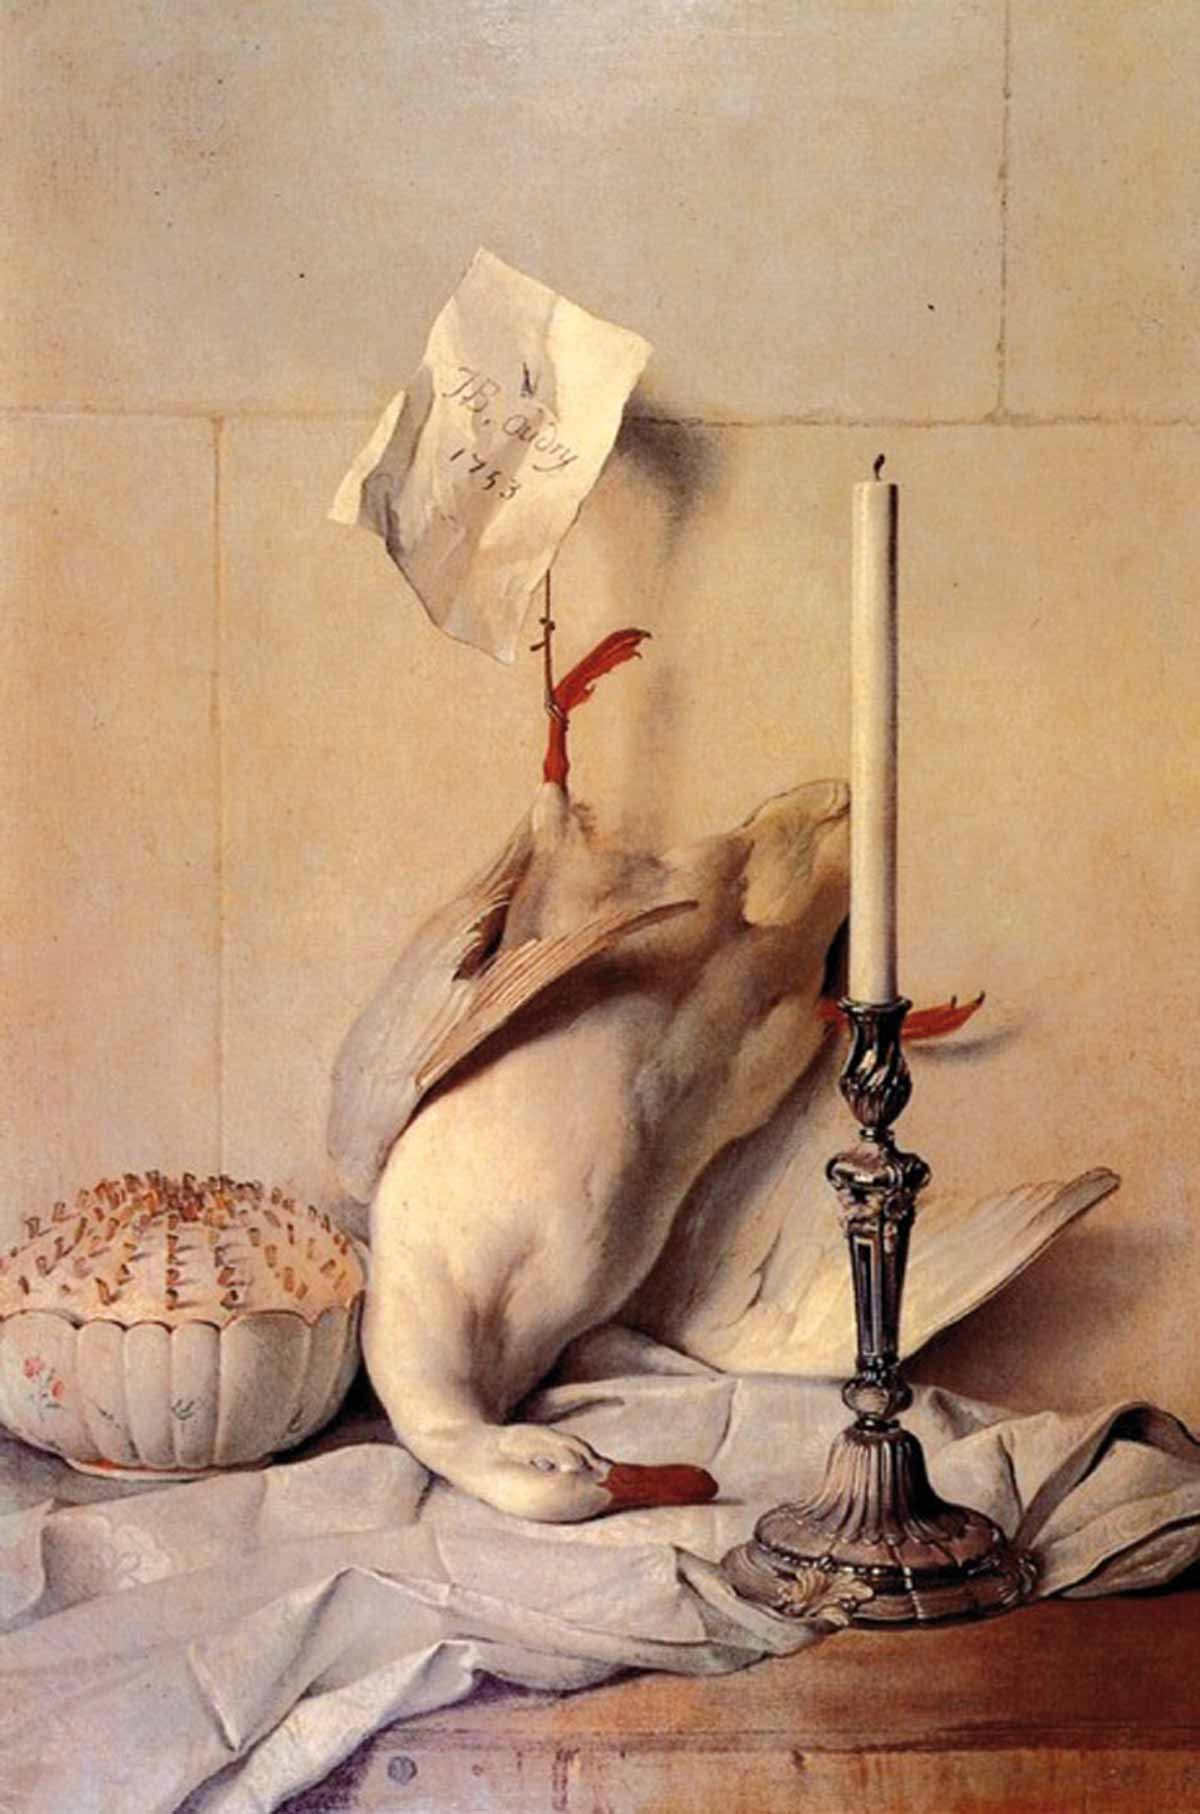 Stolen painting Jean-Baptiste Oudry: Still Life with a White Duck (1753)